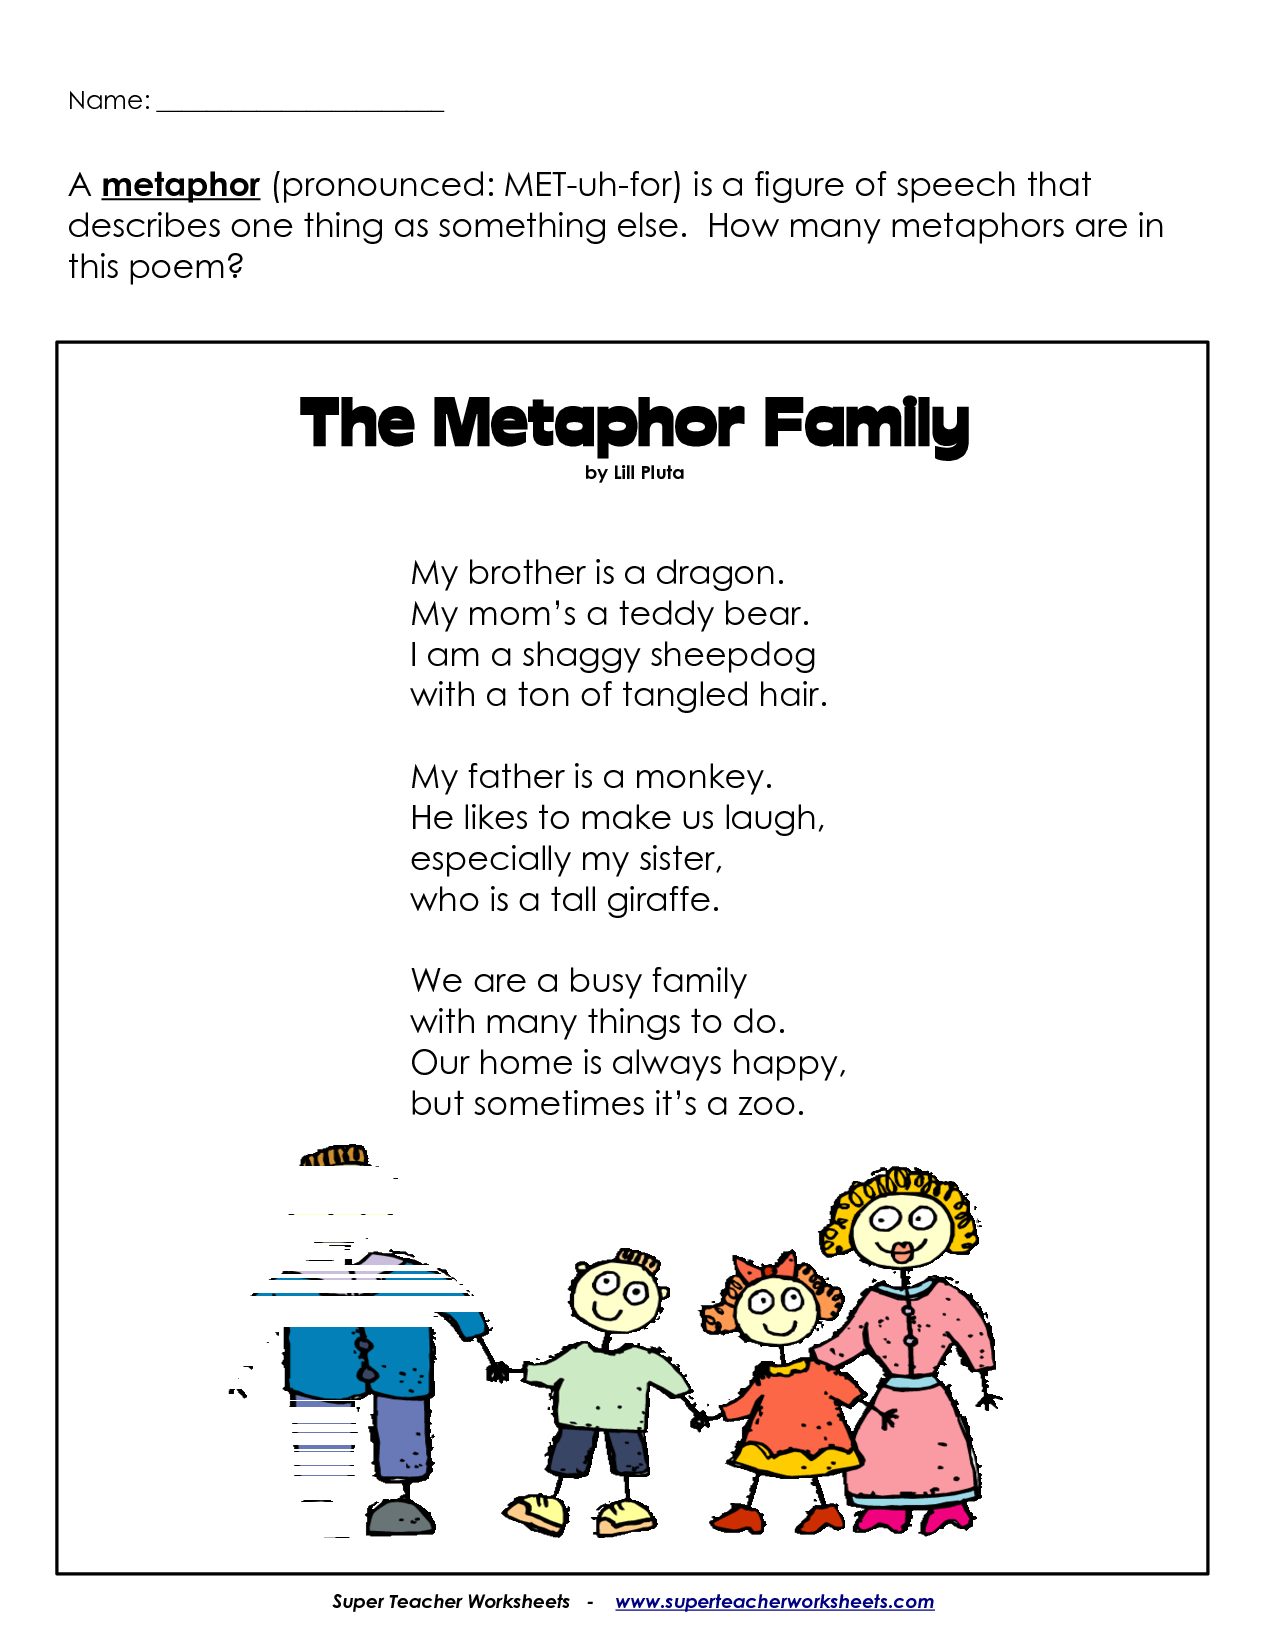 worksheet What Is A Metaphor Math Worksheet 63252639 figurative language pinterest poems and metaphor poem worksheet love this for introductory lesson